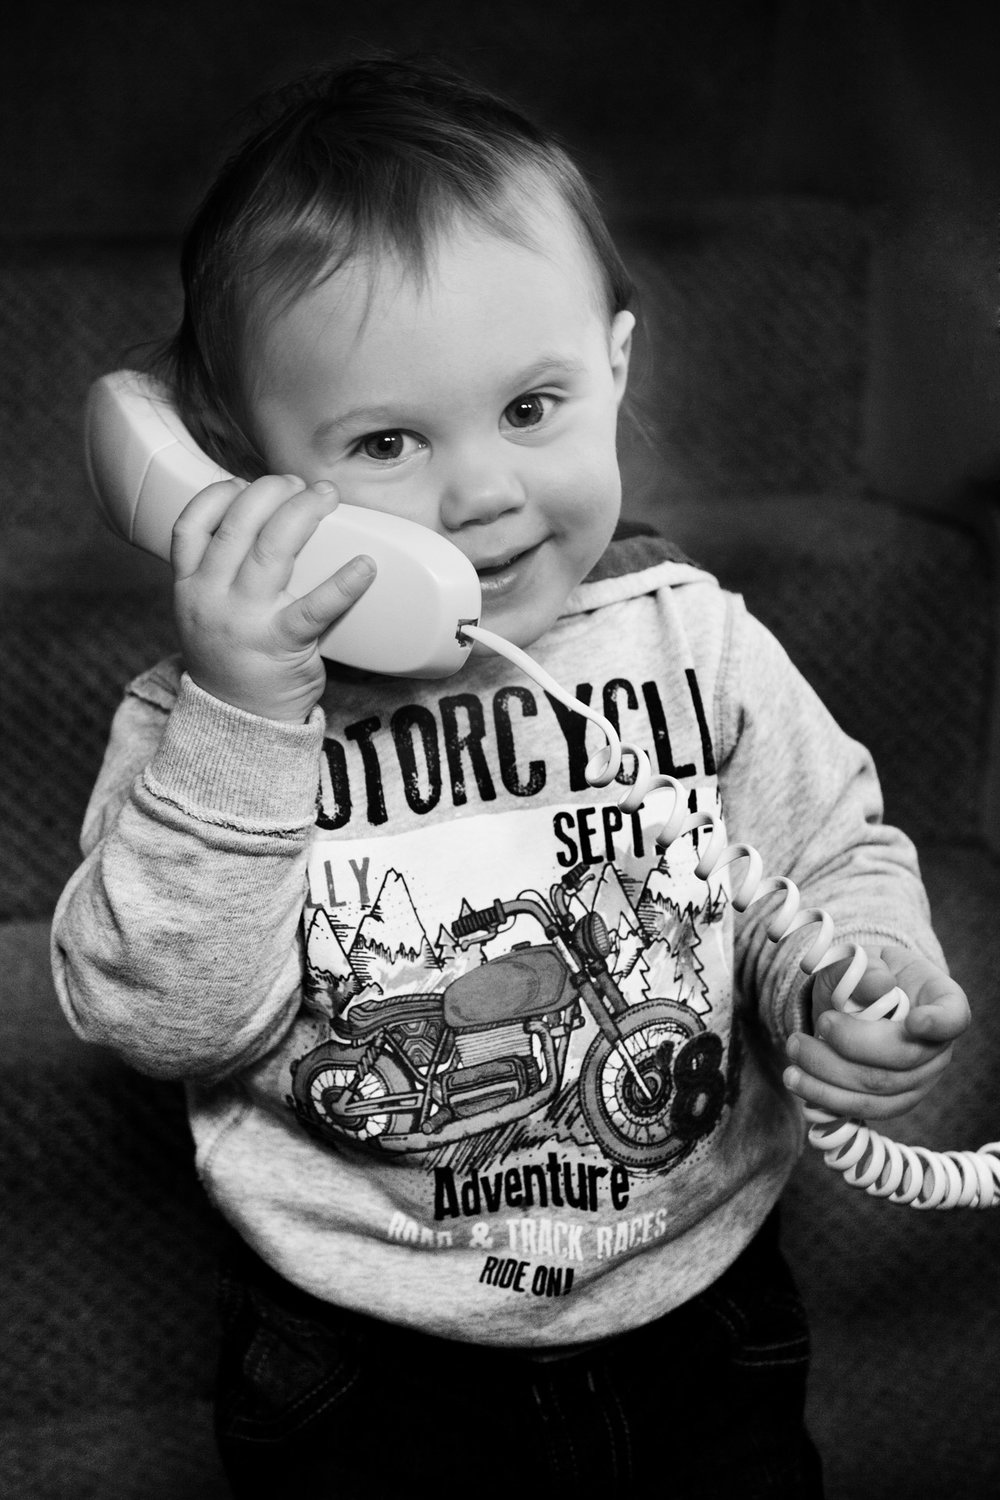 boy-making-a-phone-call (1).jpg